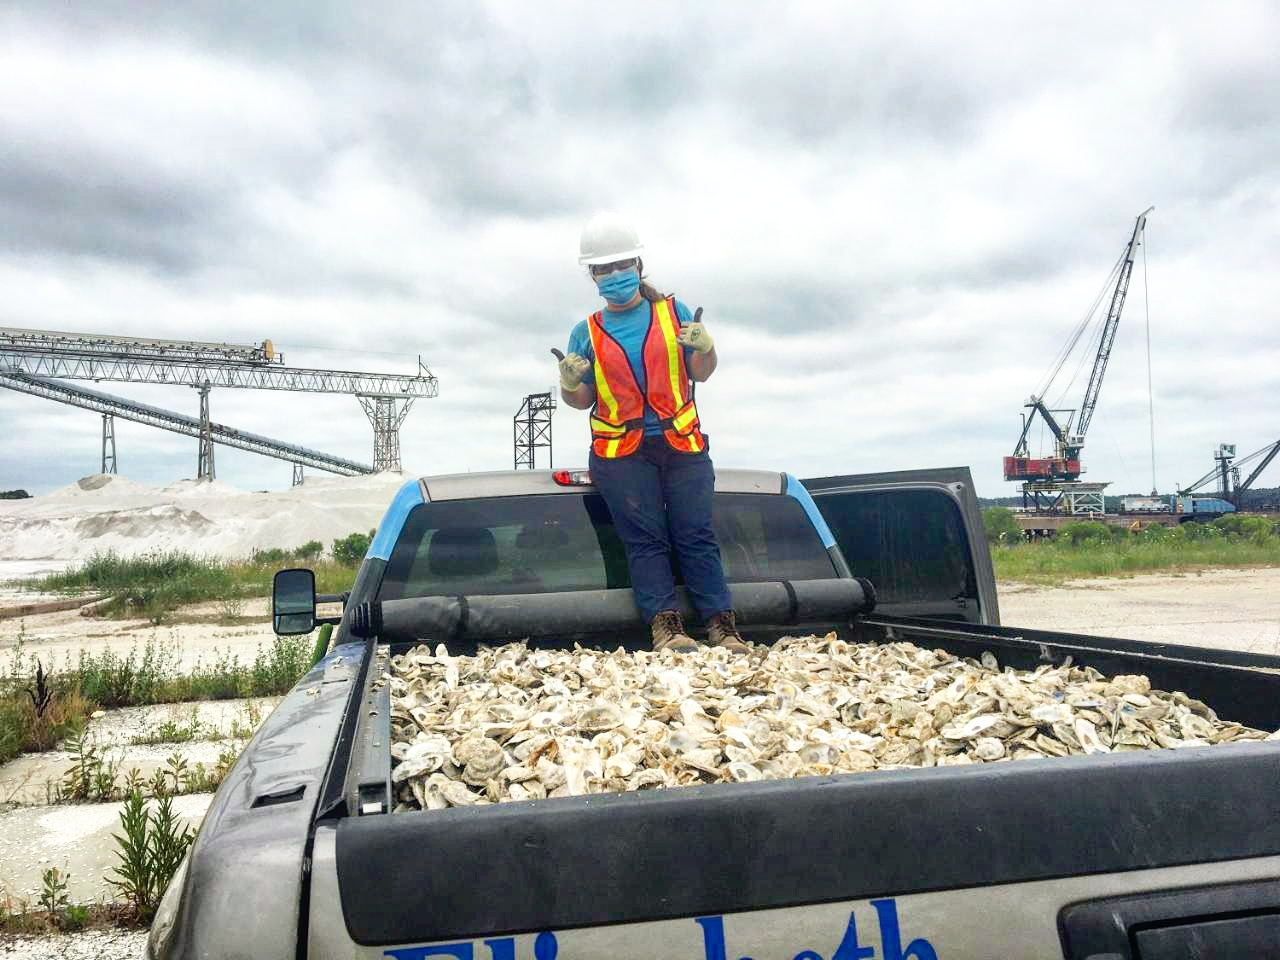 A person in a hard hat and an orange vest standing in a truck bed filled with oysters.